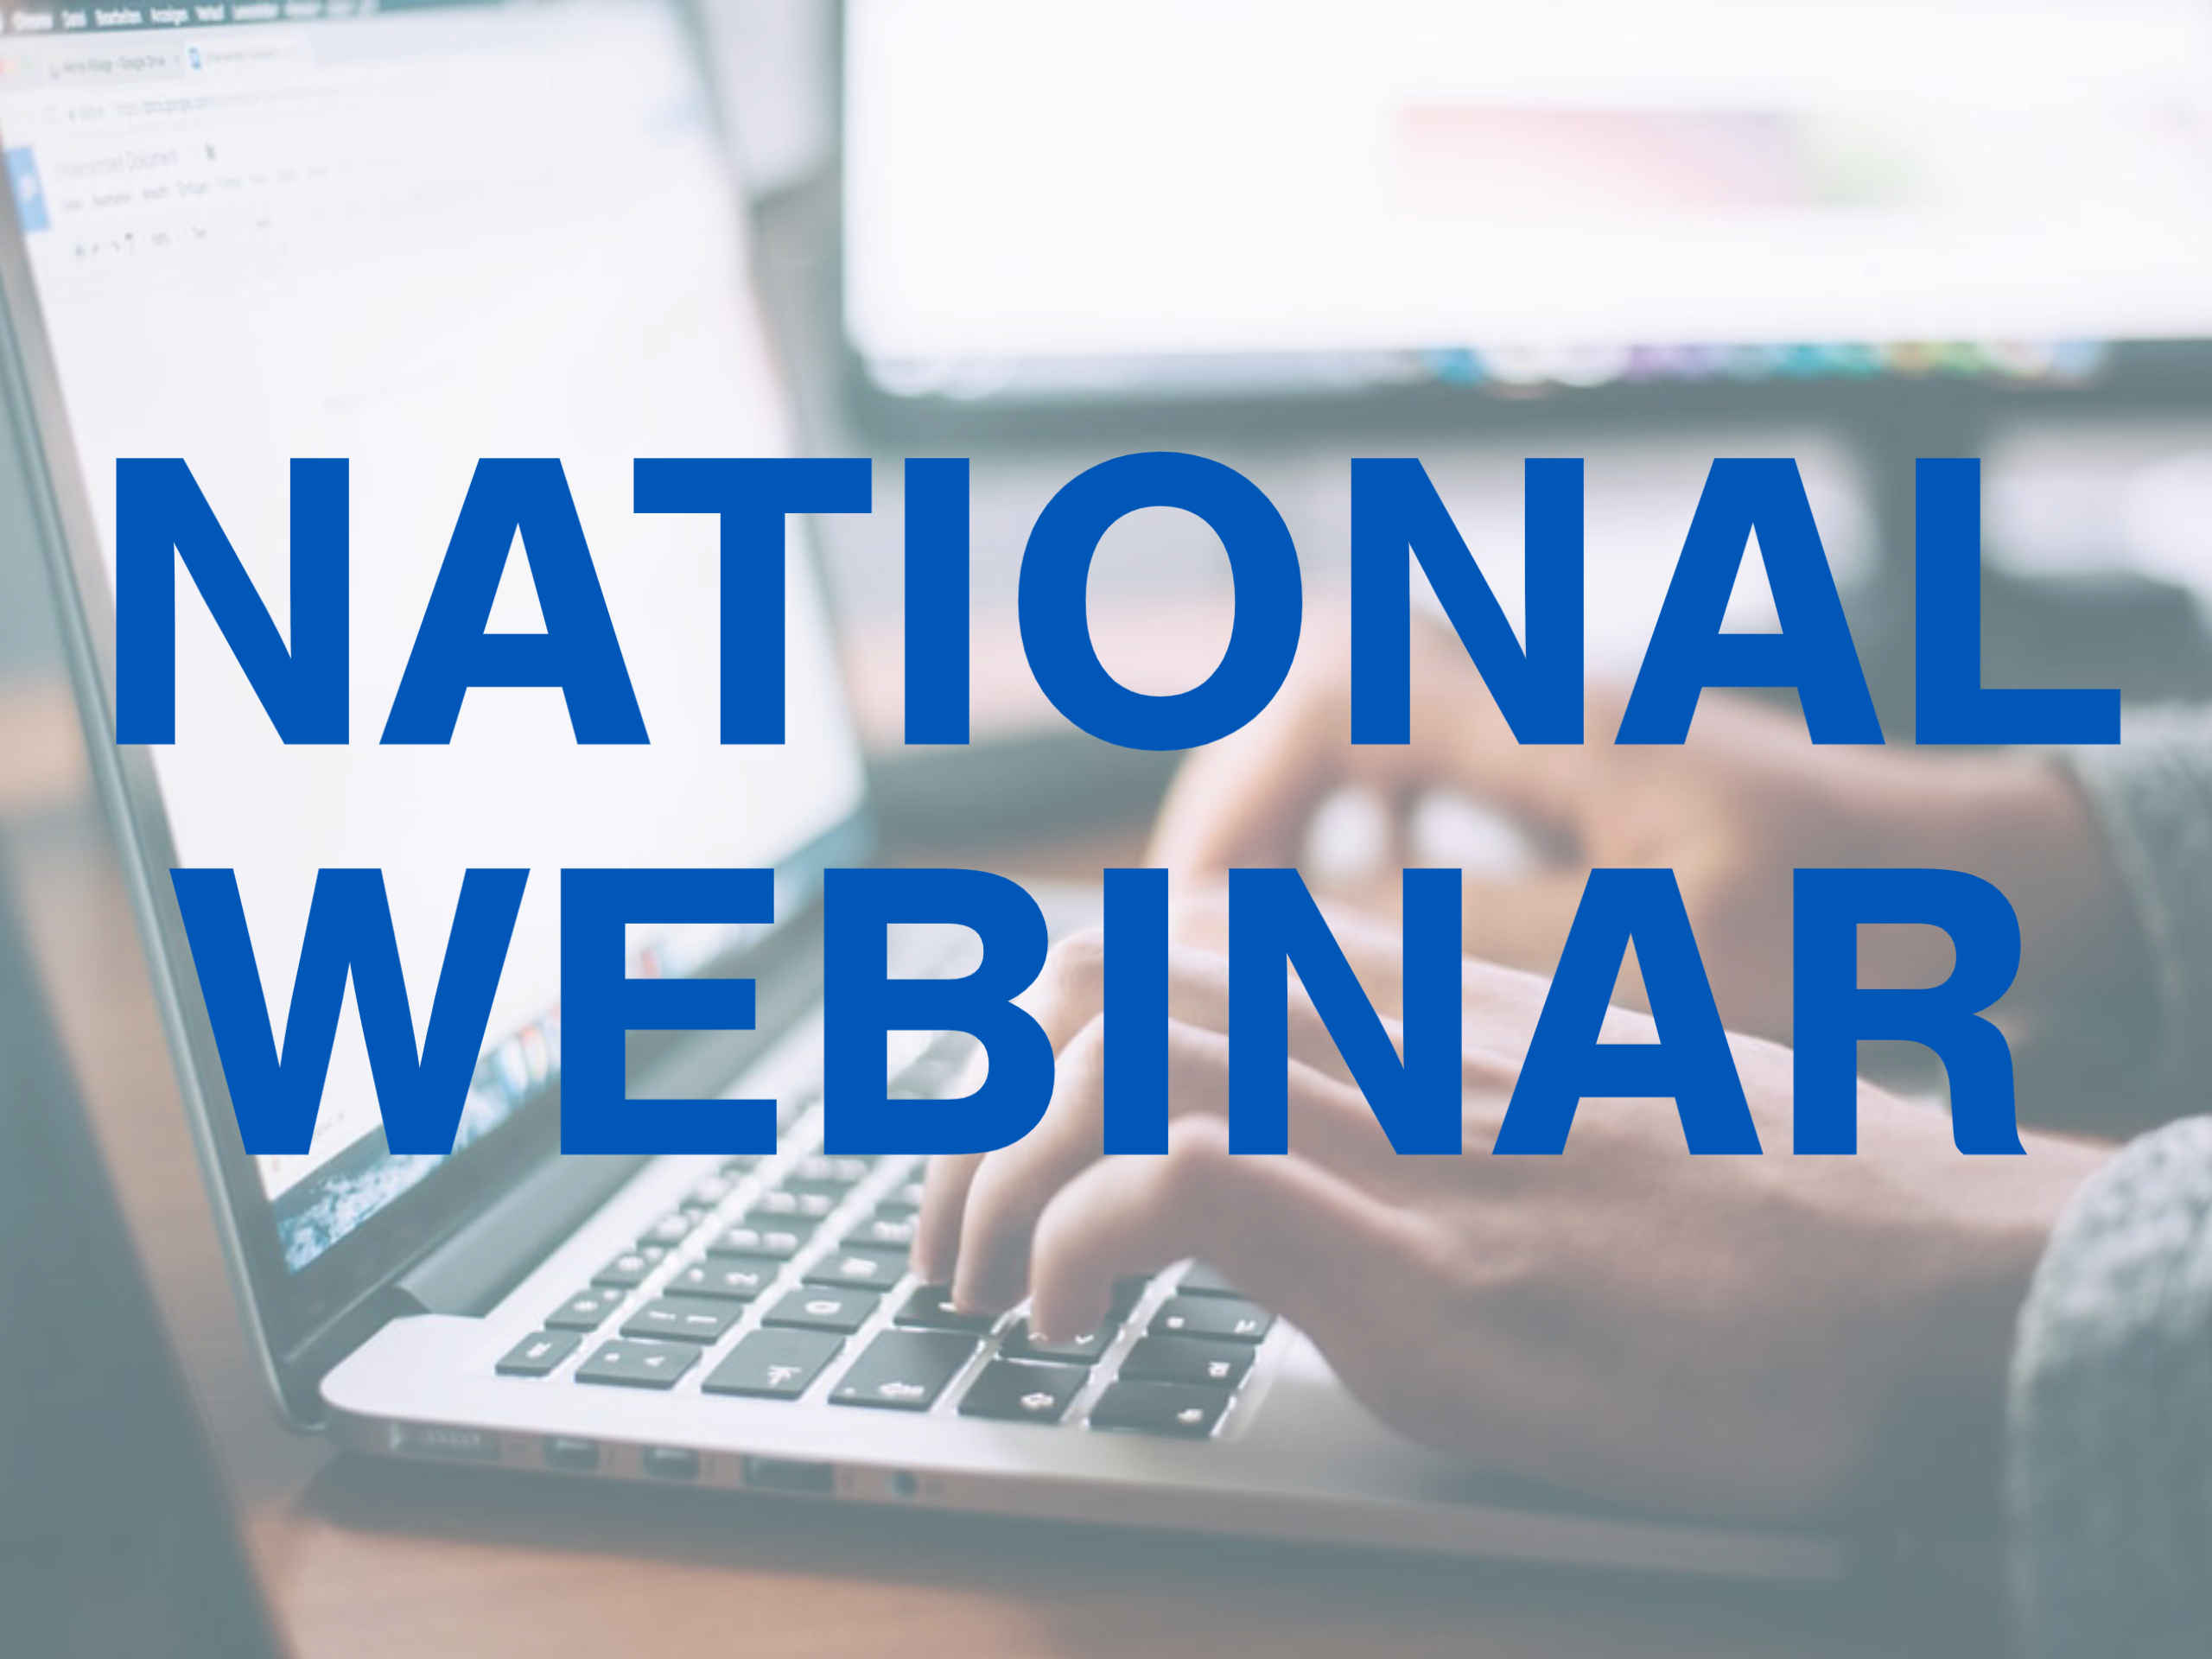 Icon - National Webinar (blue)